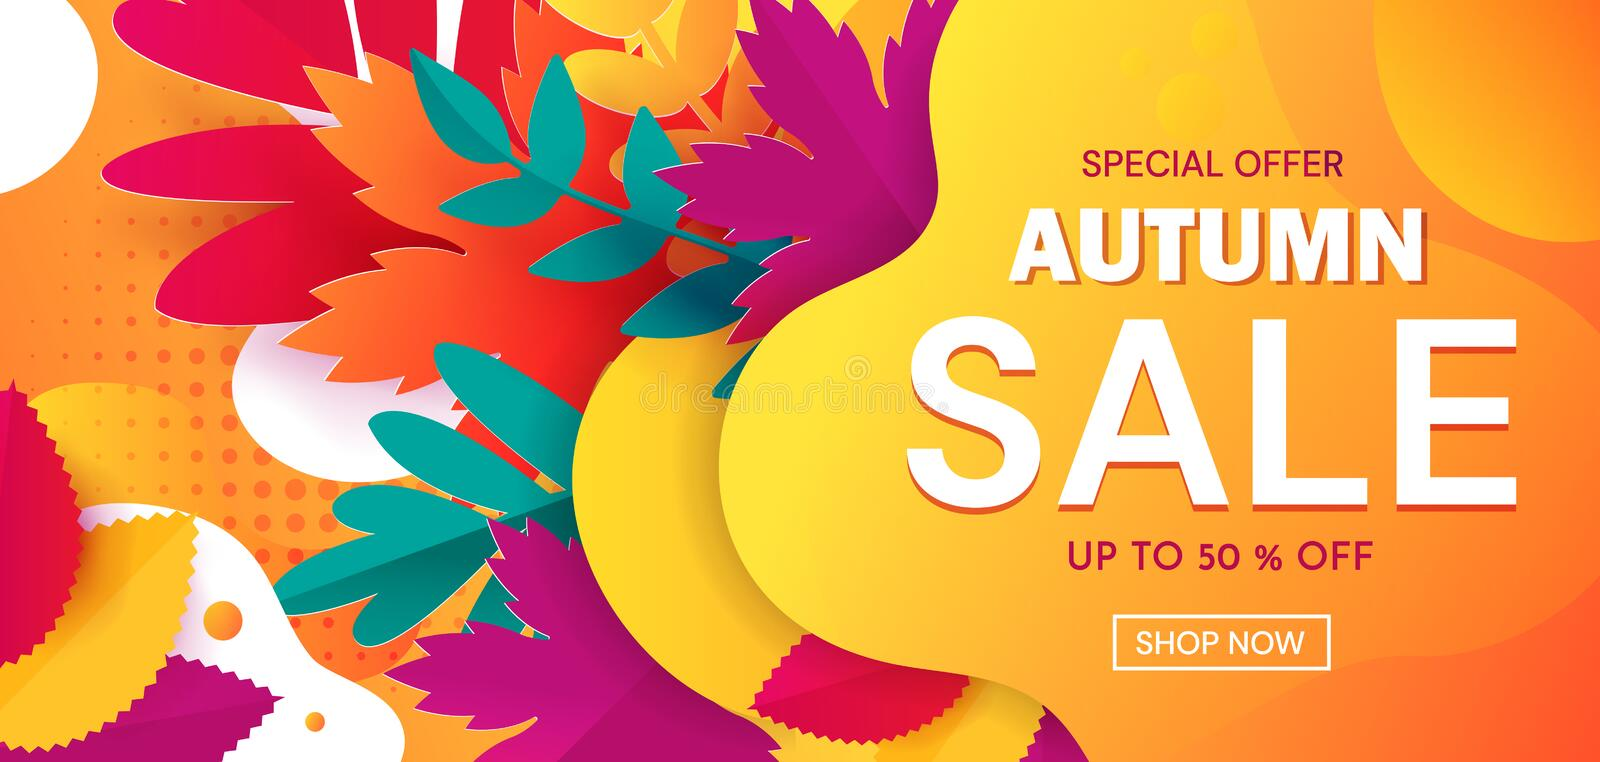 BannerColorful banner advertising an Autumn Sale with 50 percent discounts and special offers with text on abstract royalty free illustration